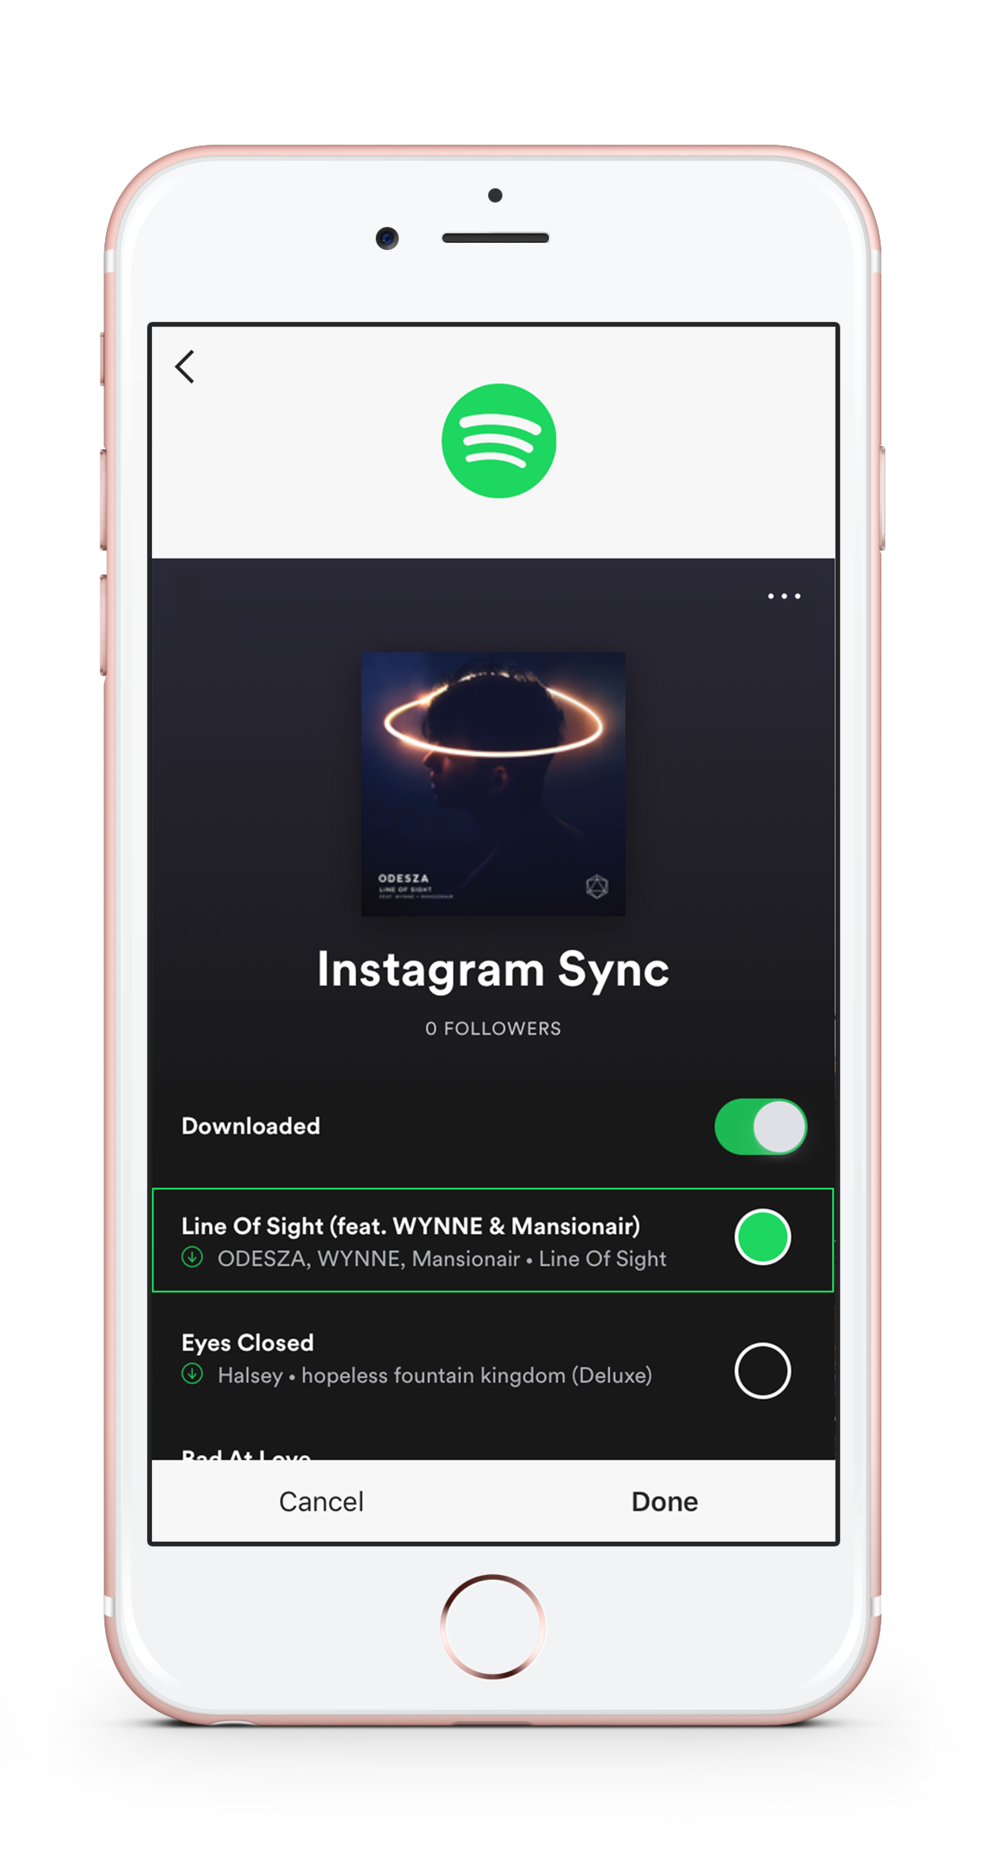 Spotify Song Selection in Instagram App